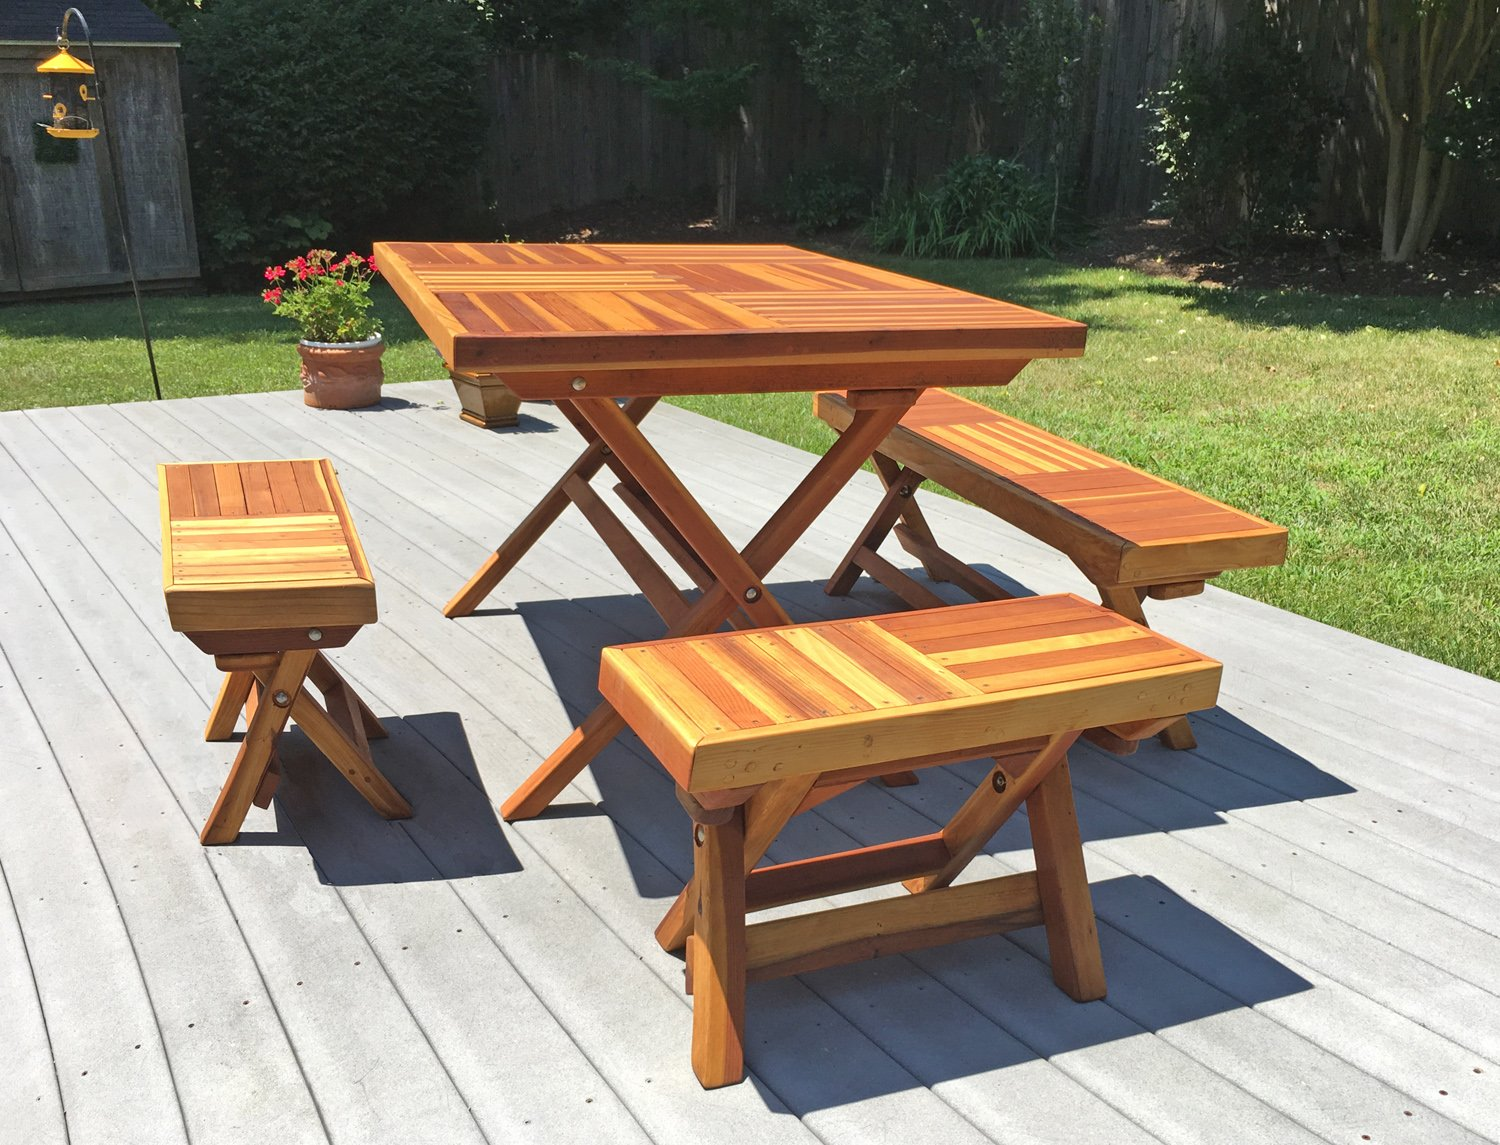 Redwood Rectangular Folding Picnic Table With Foldup Legs - Ready to assemble picnic table